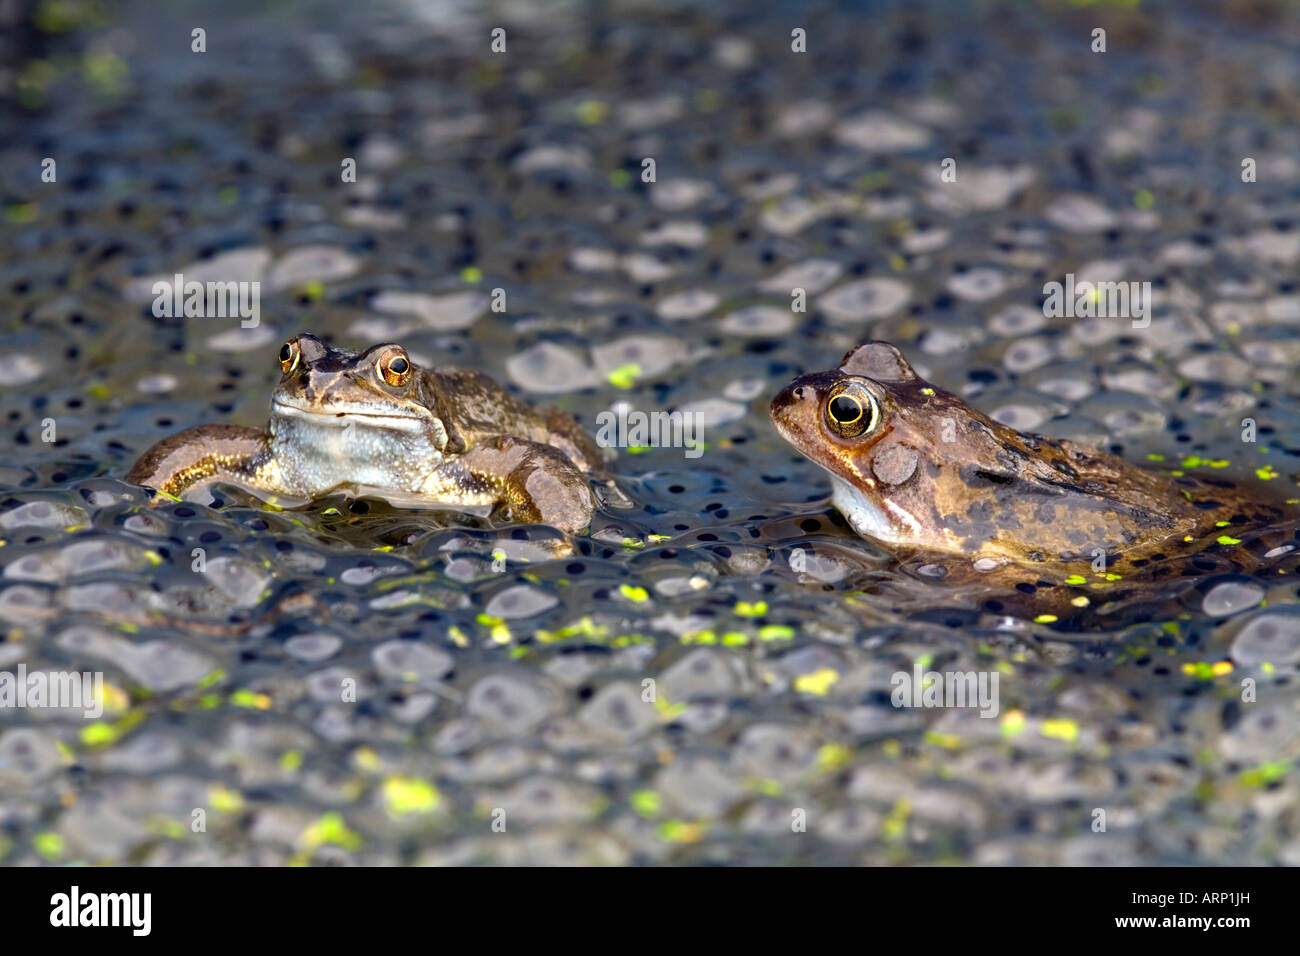 common frogs Rana temporaria amongst frog spawn - Stock Image